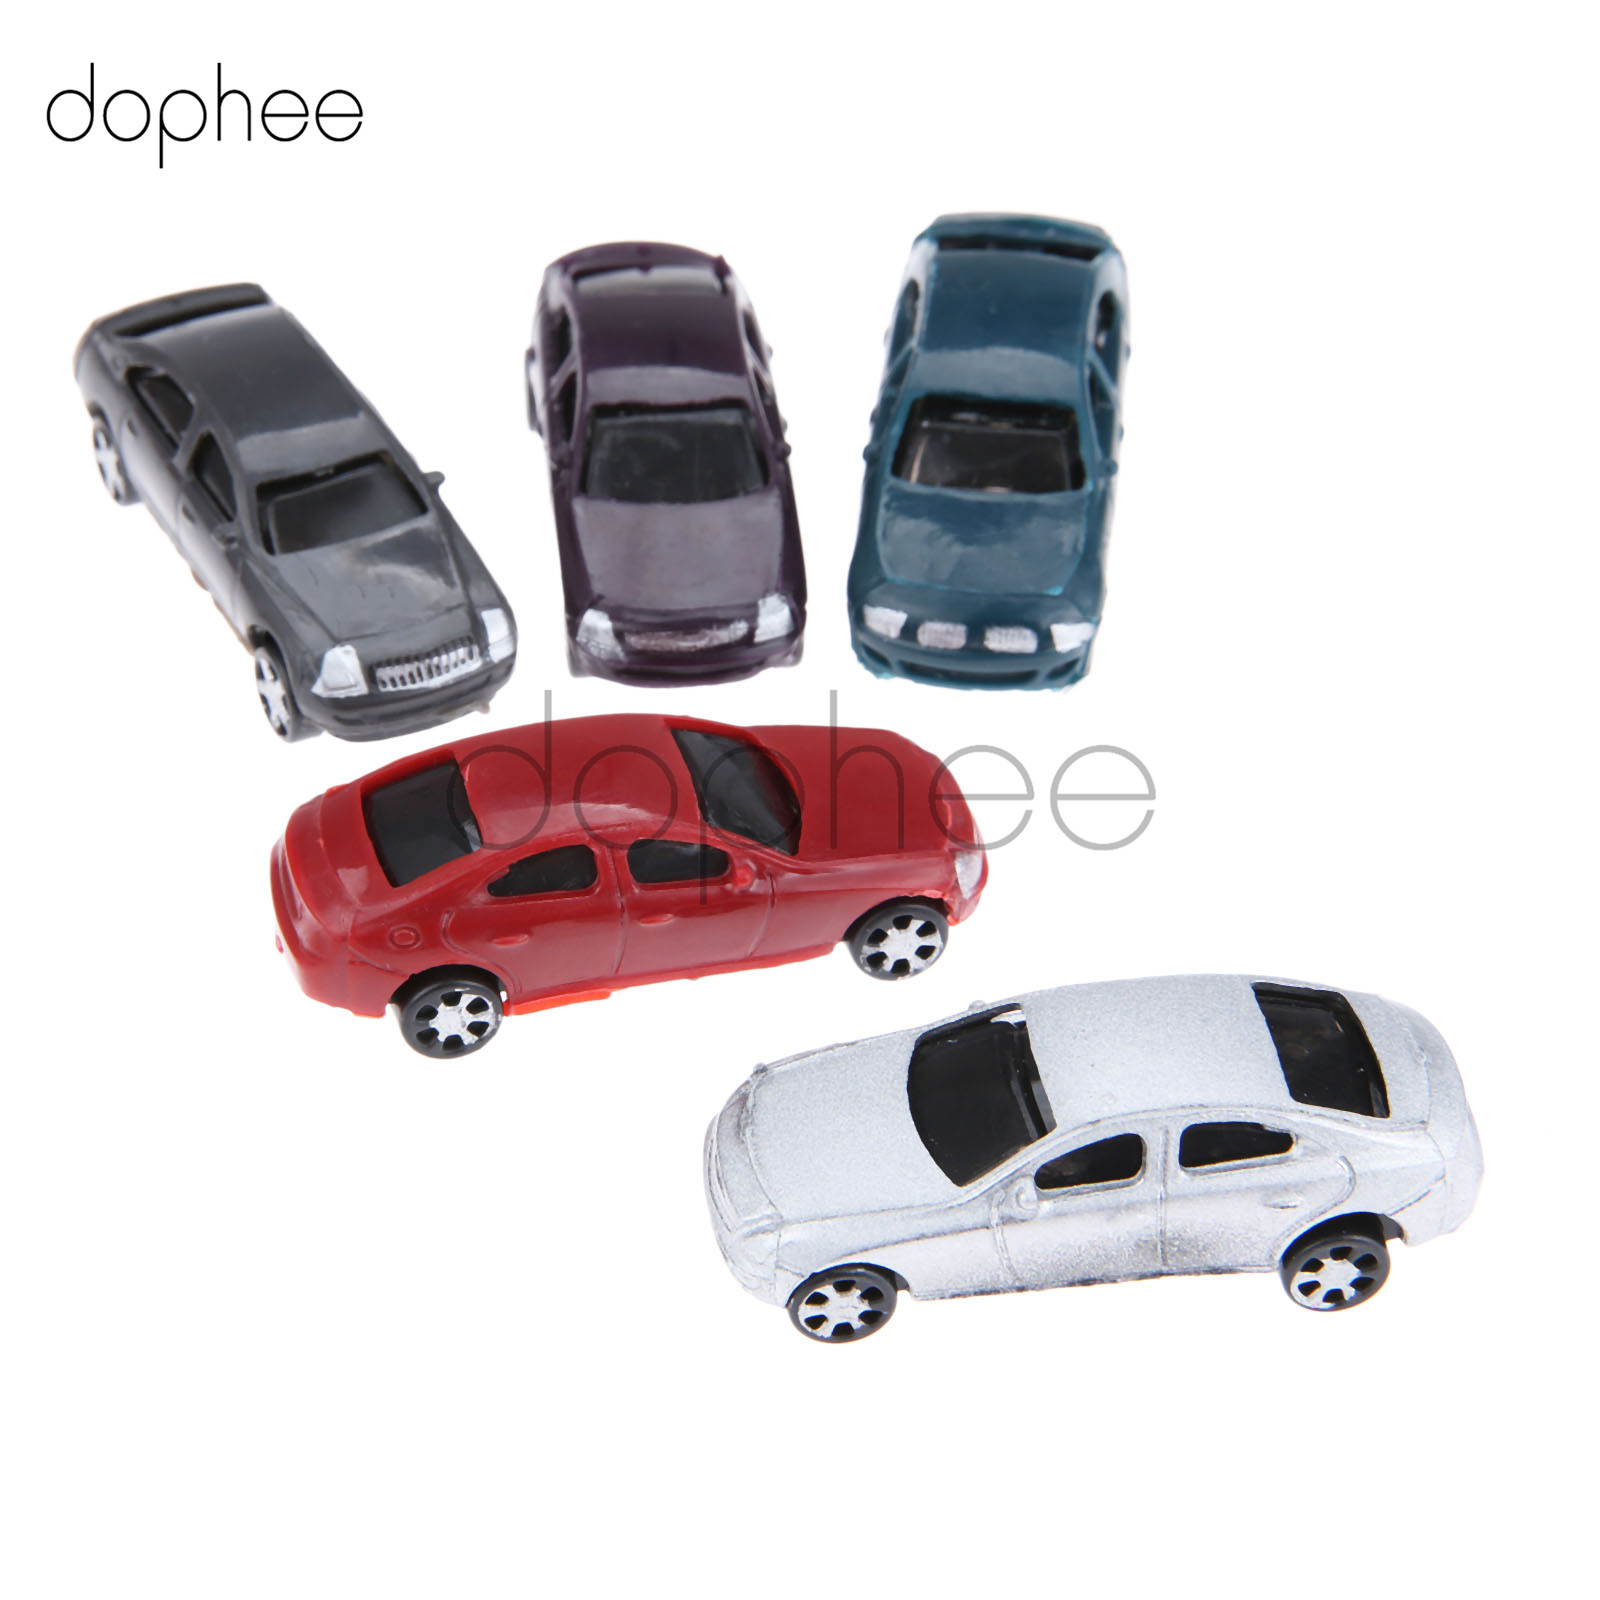 dophee 10pcs/lot Painted Model Cars Building Train Layout Scale HO 1:100 Model Building Toy Kits